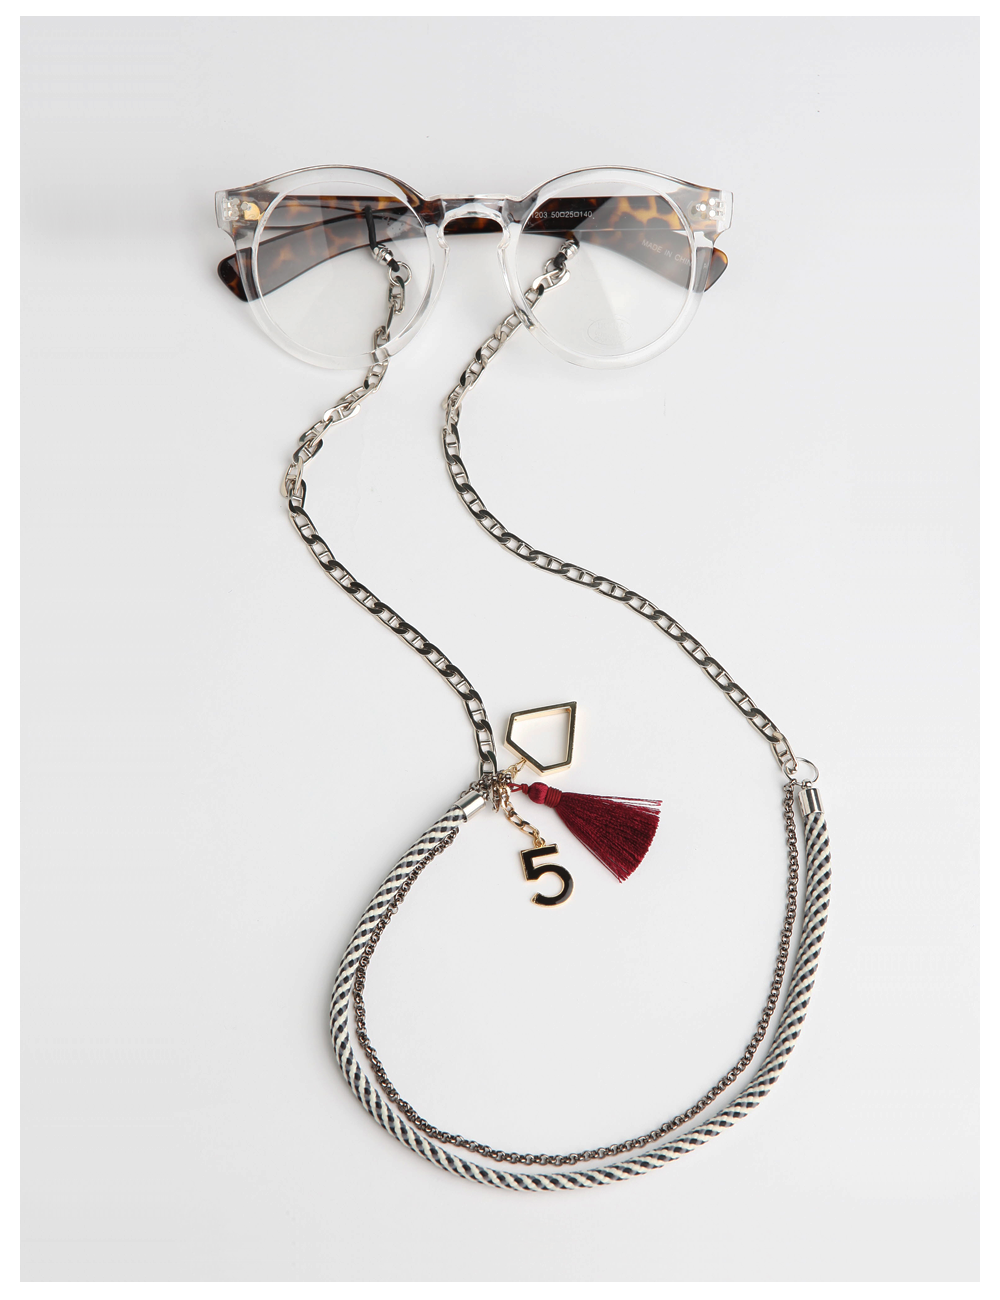 HIPSTER RIO / burgundy_EYE GLASS CHAIN